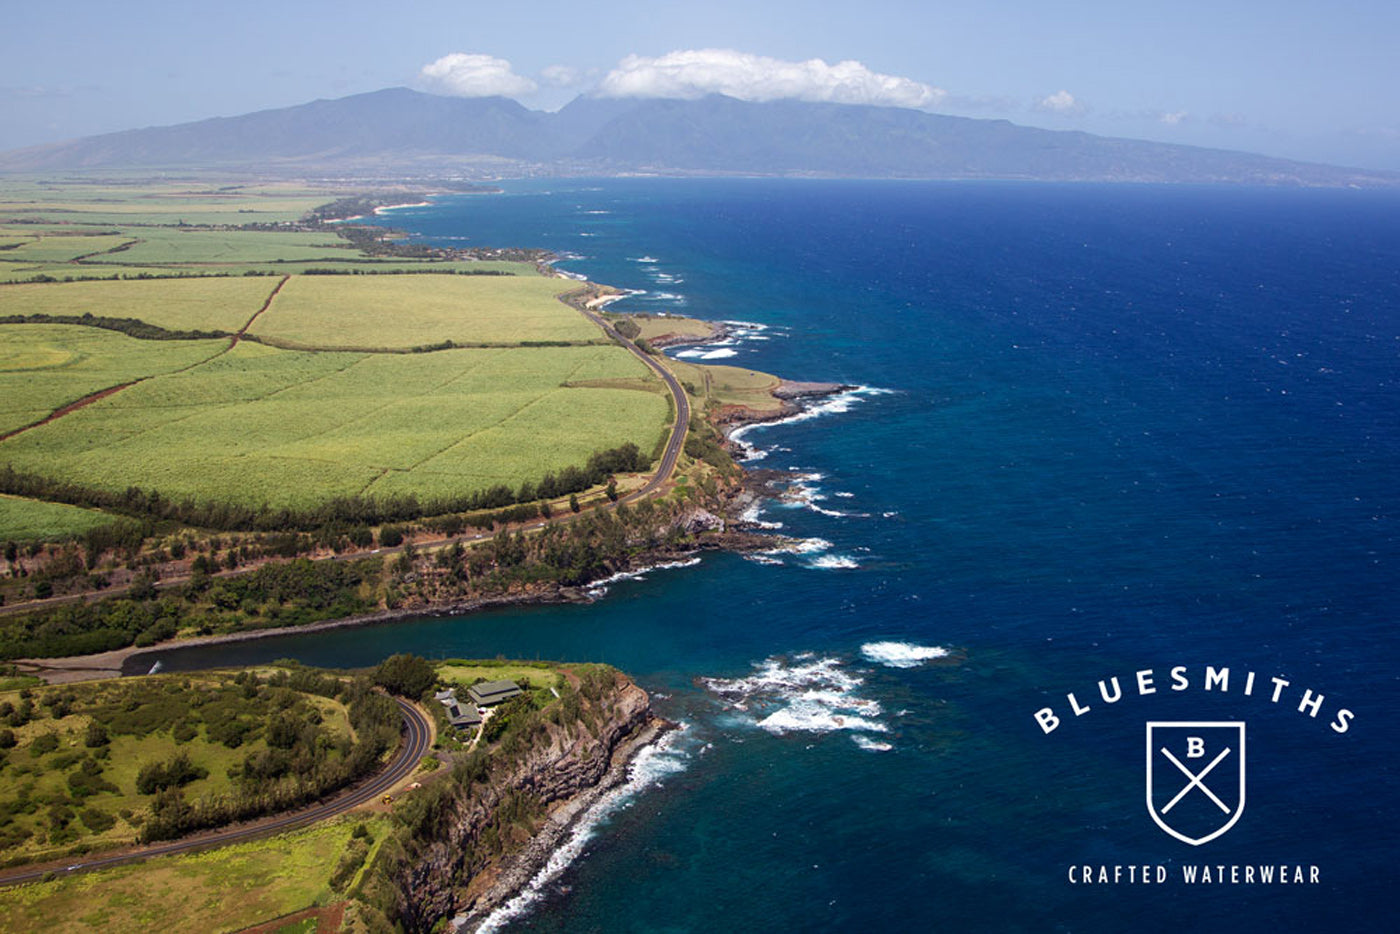 The Maliko Run, Maui Hawaii (Bluesmiths)